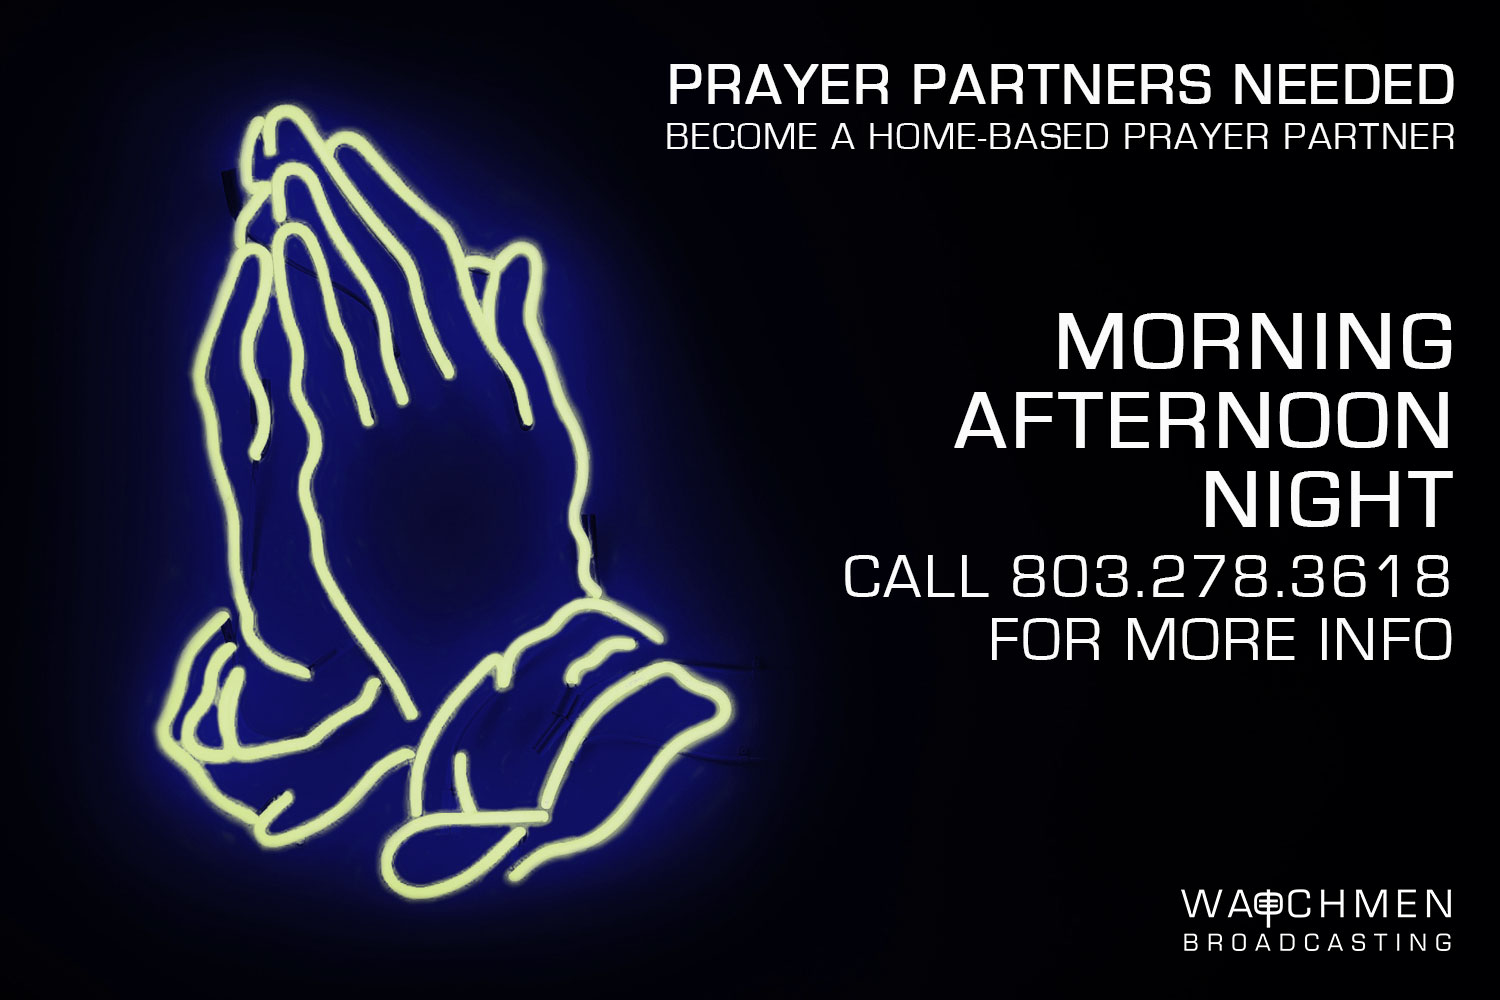 24 Hour Prayer Partner | Watchmen Broadcasting